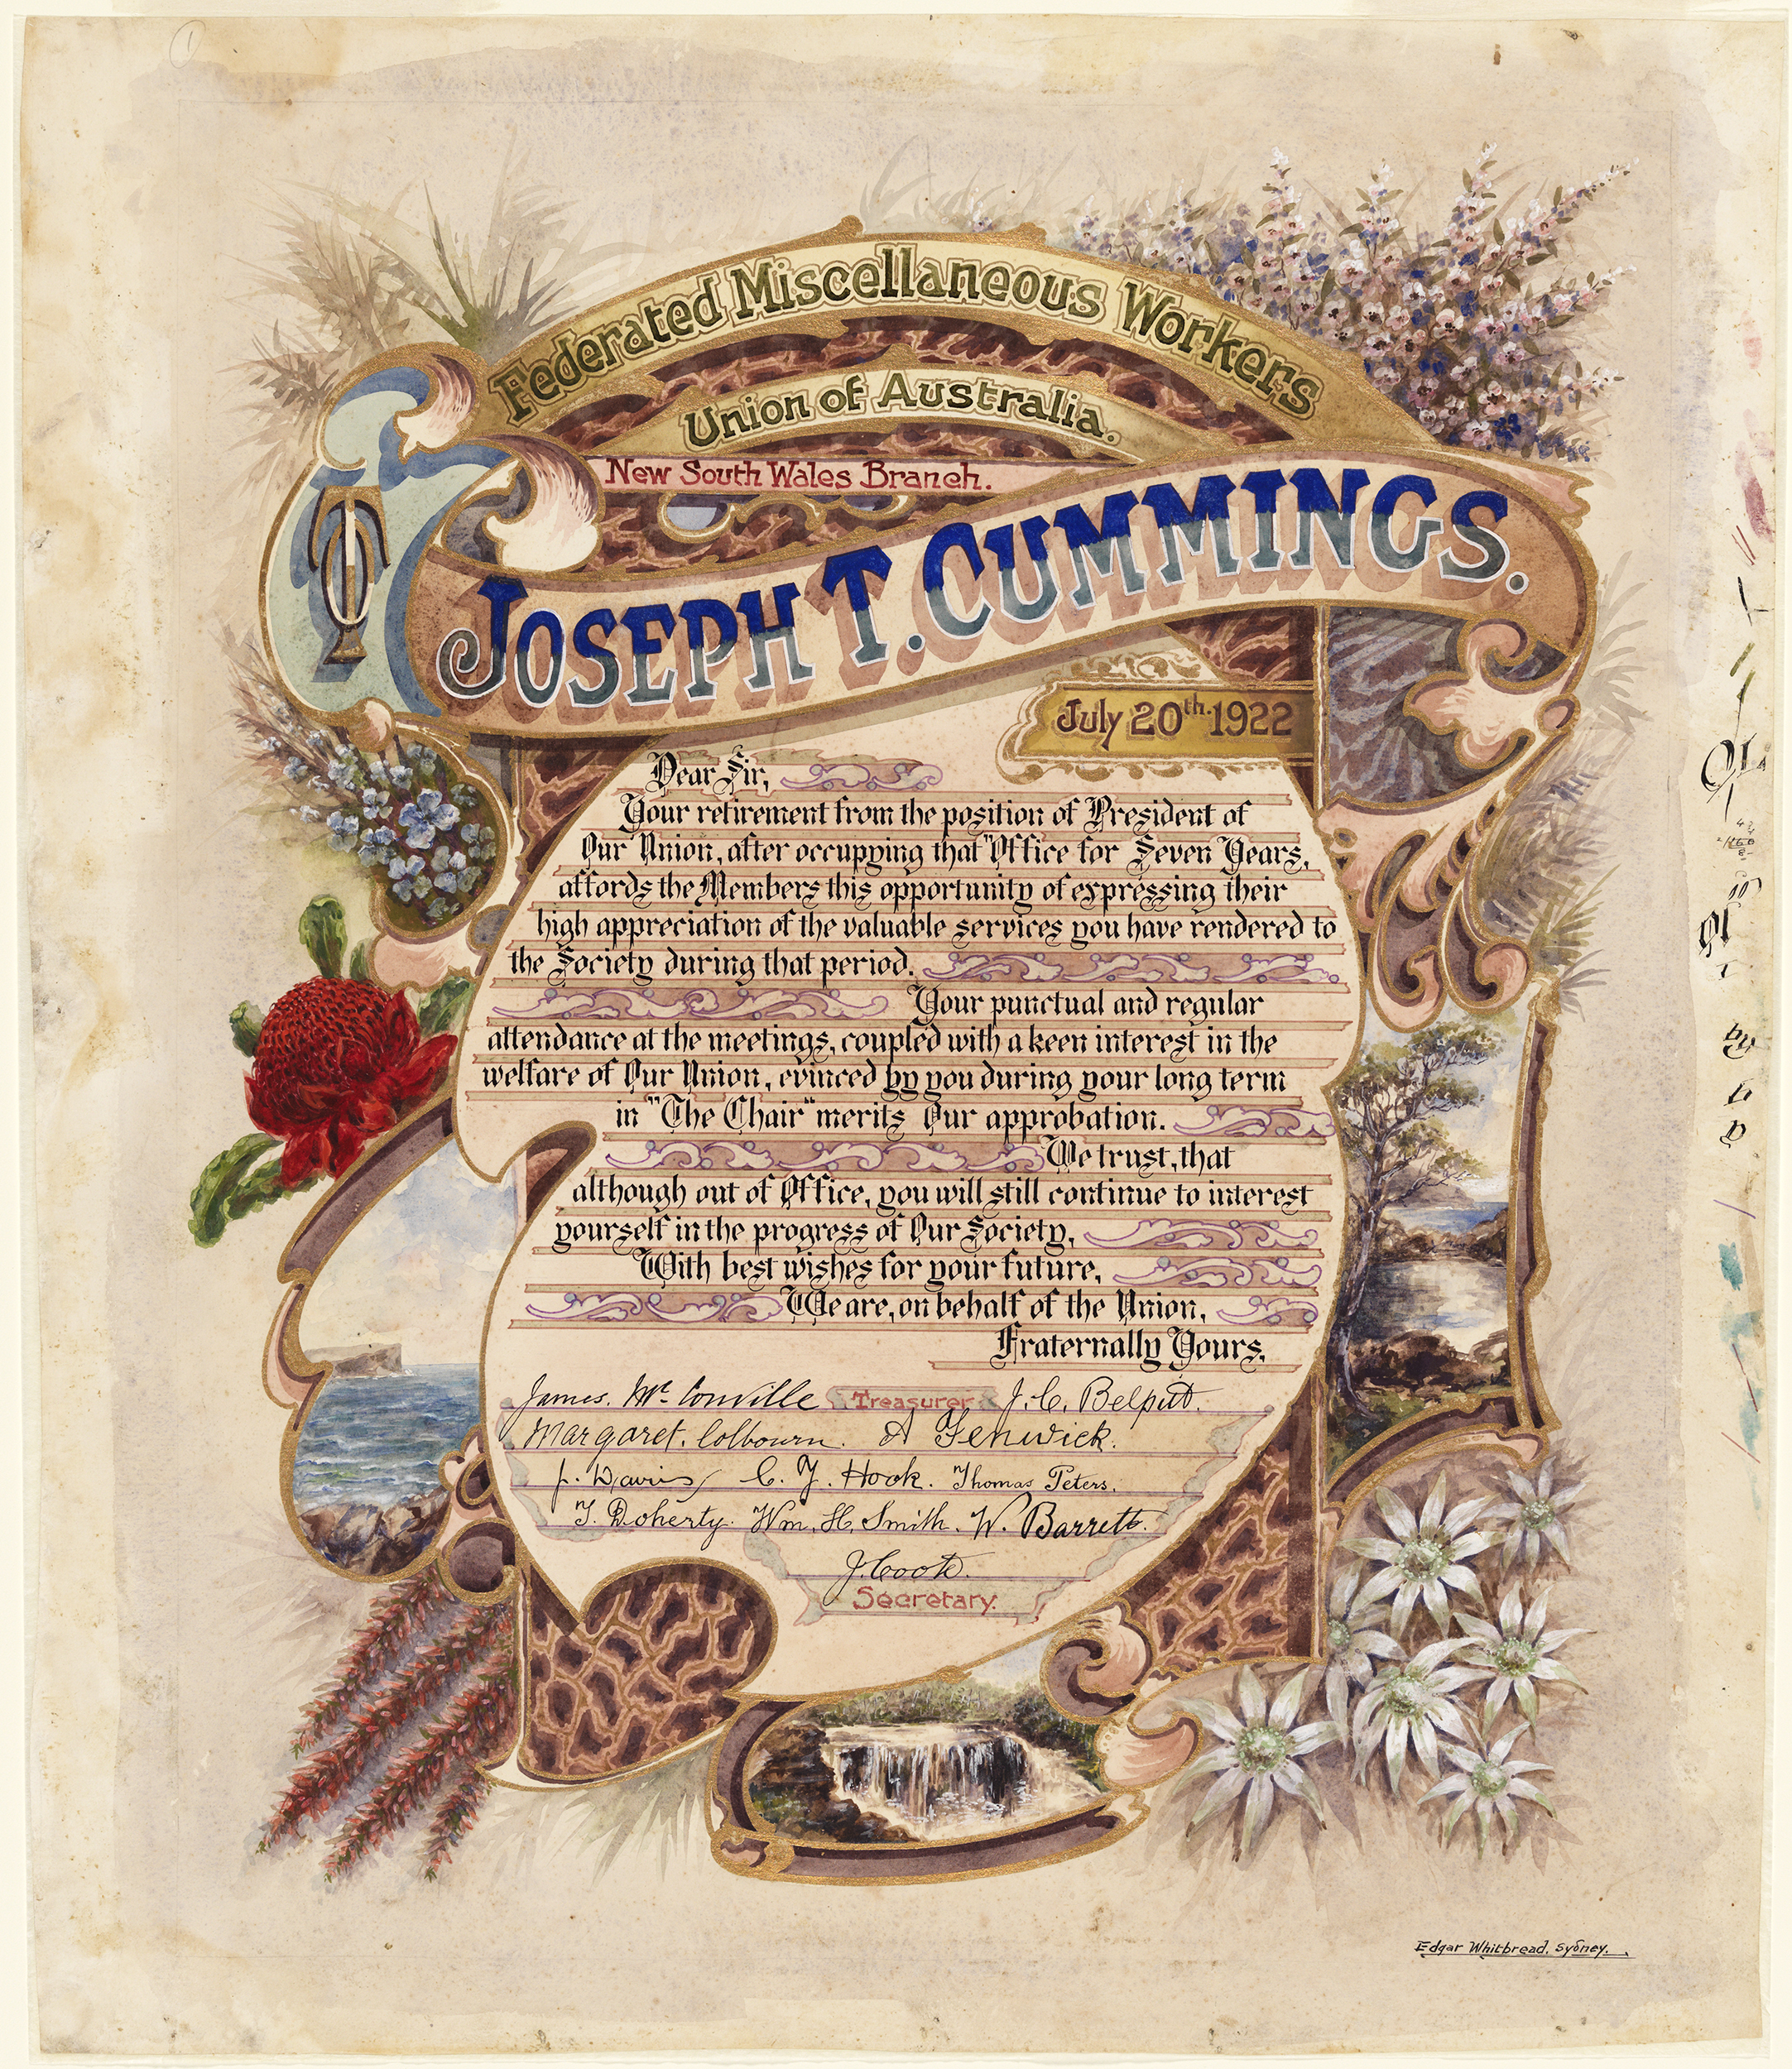 A hand illustrated illuminated address, made out to Joseph T Cummings dated July 20, 1922